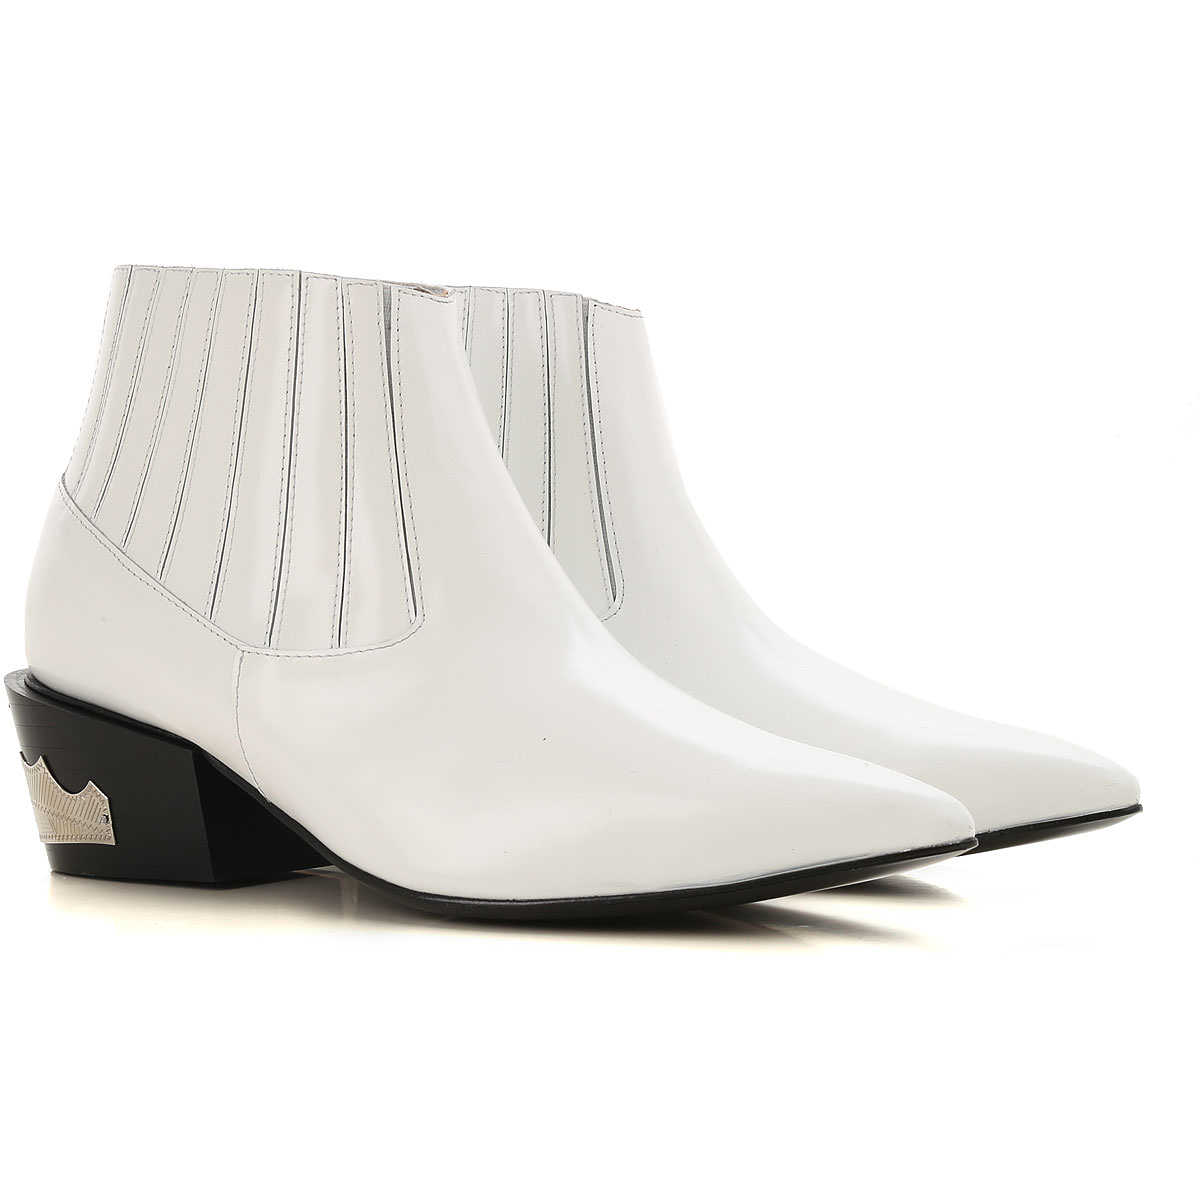 Toga Pulla Boots for Women Booties On Sale DK - GOOFASH - Womens BOOTS